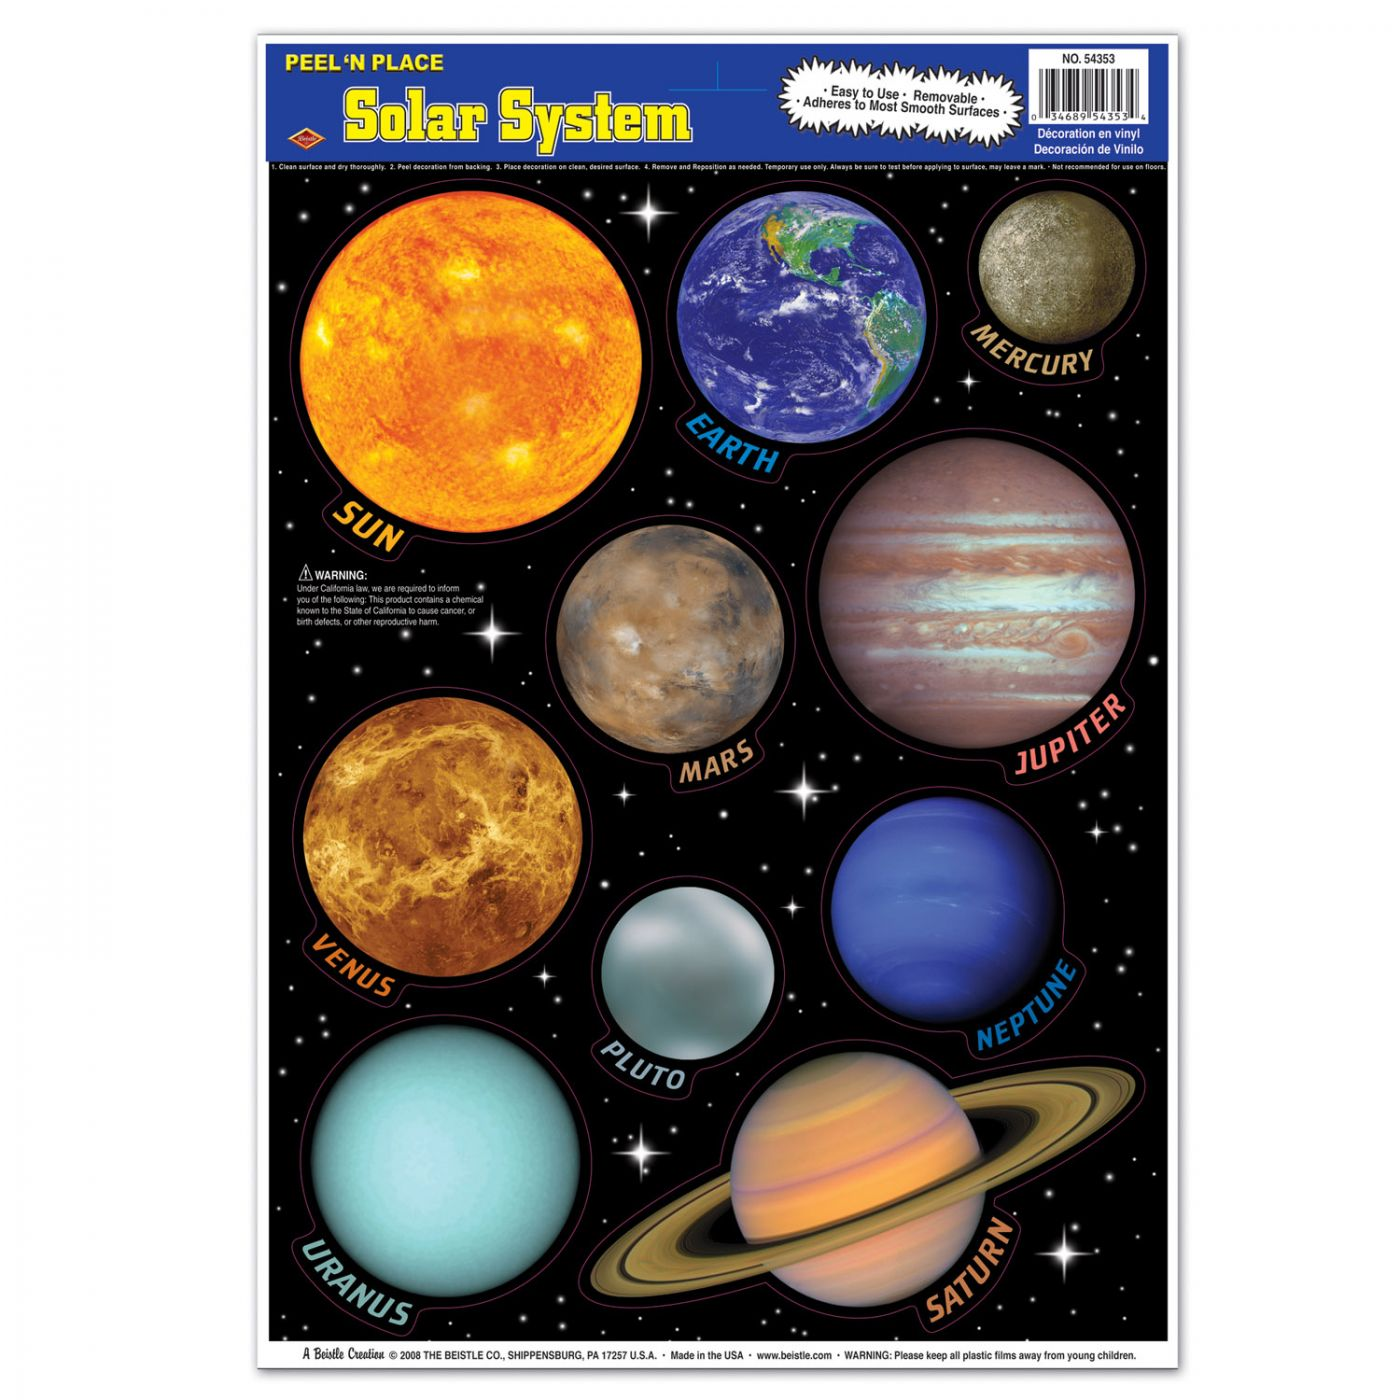 Solar System Peel 'N Place image